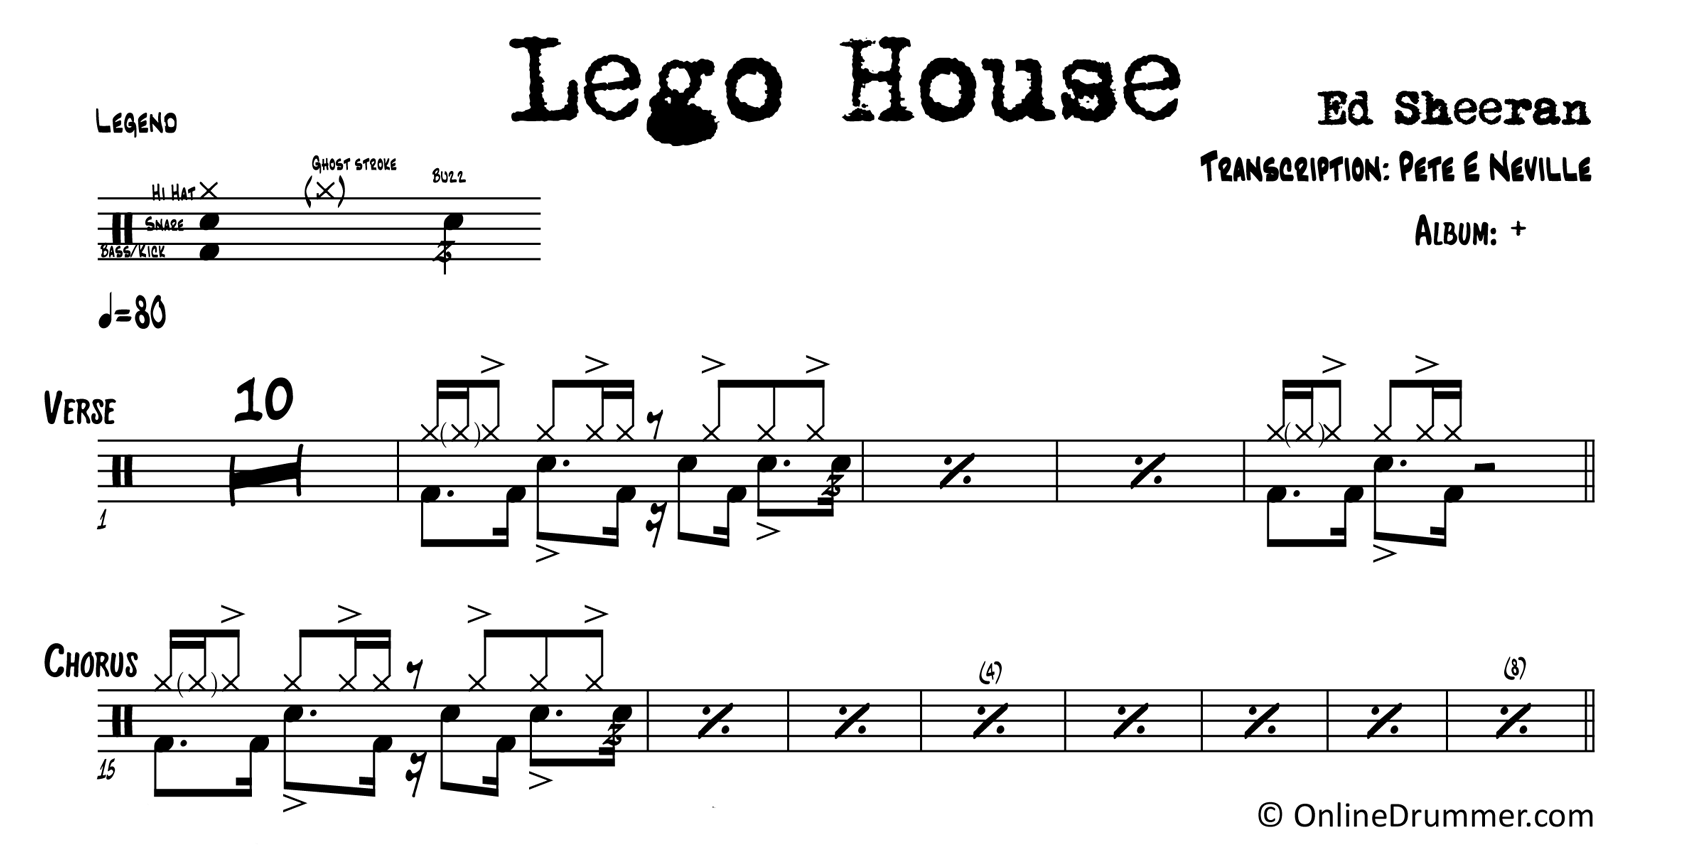 Lego House - Ed Sheeran - Drum Sheet Music